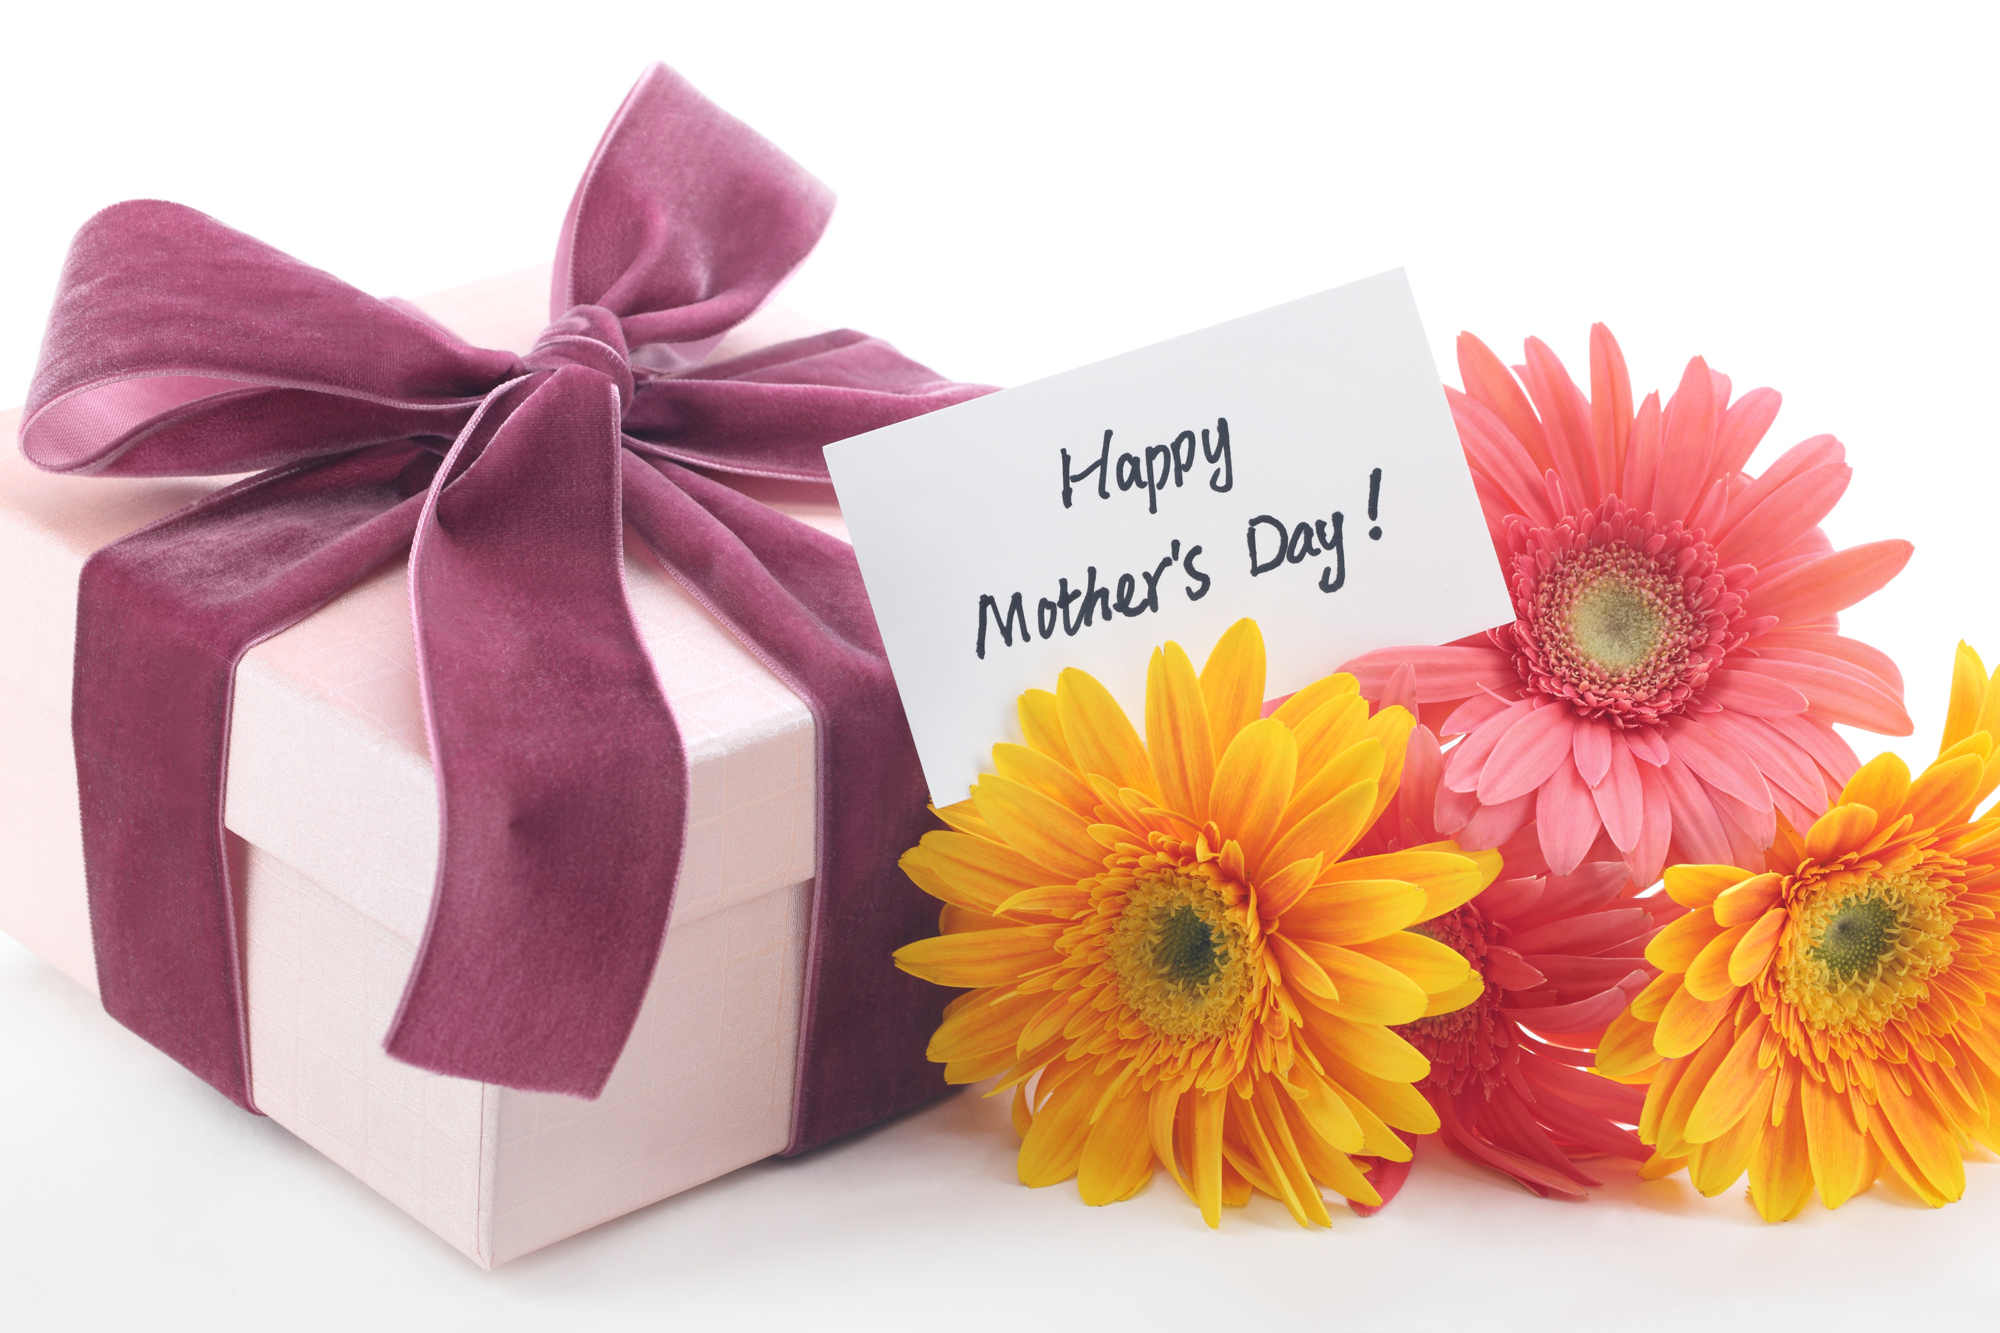 Mother's Day Gift Ideas - Girl Who Thinks